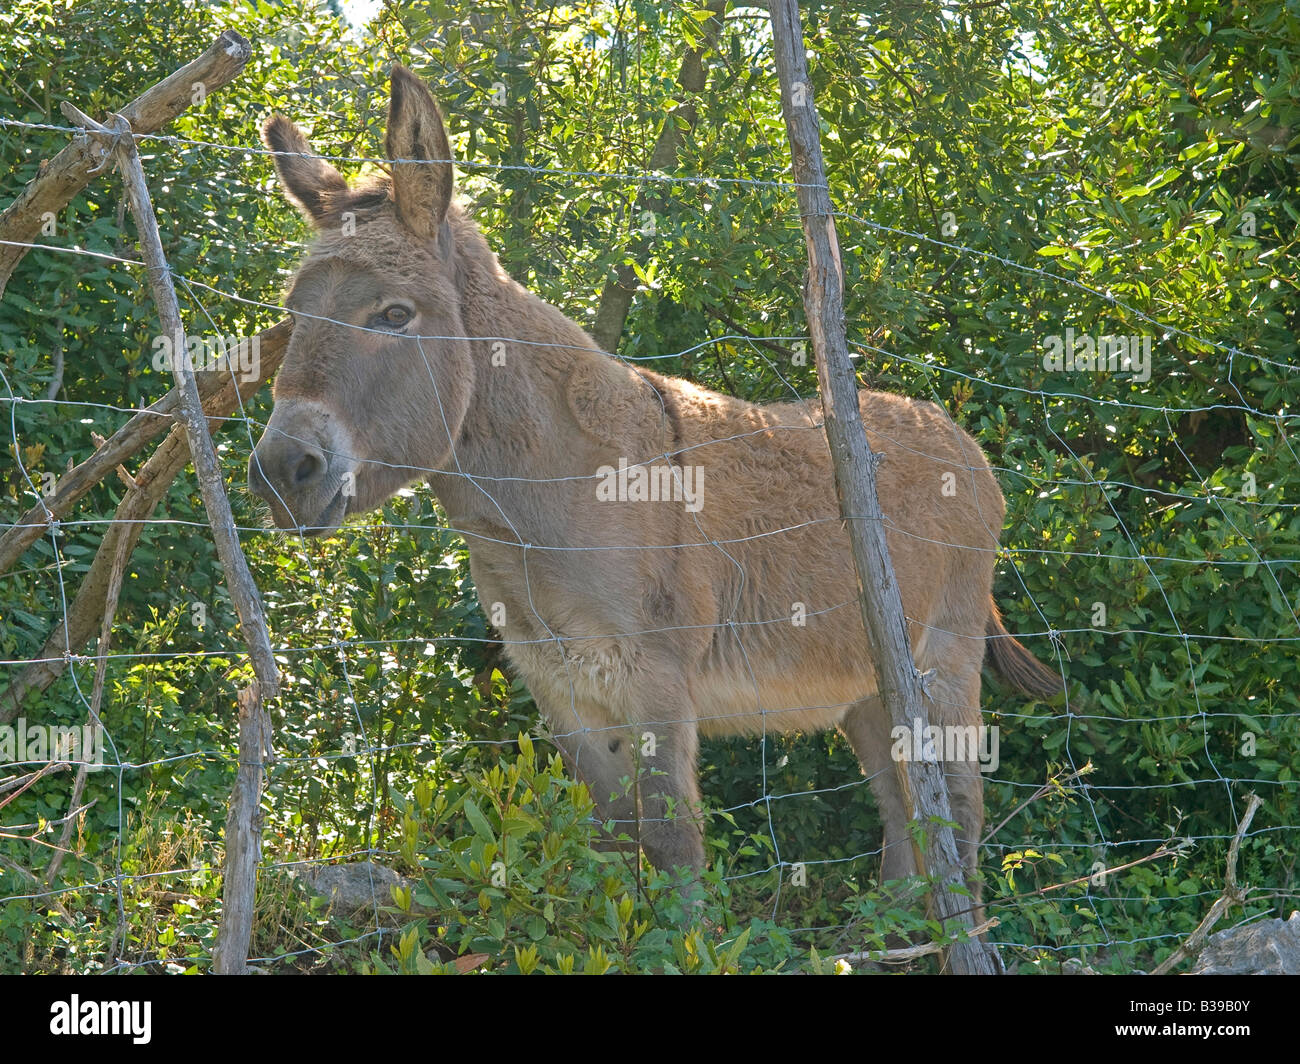 a donkey behind a fence in shrubberies is looking suspicious Stock Photo